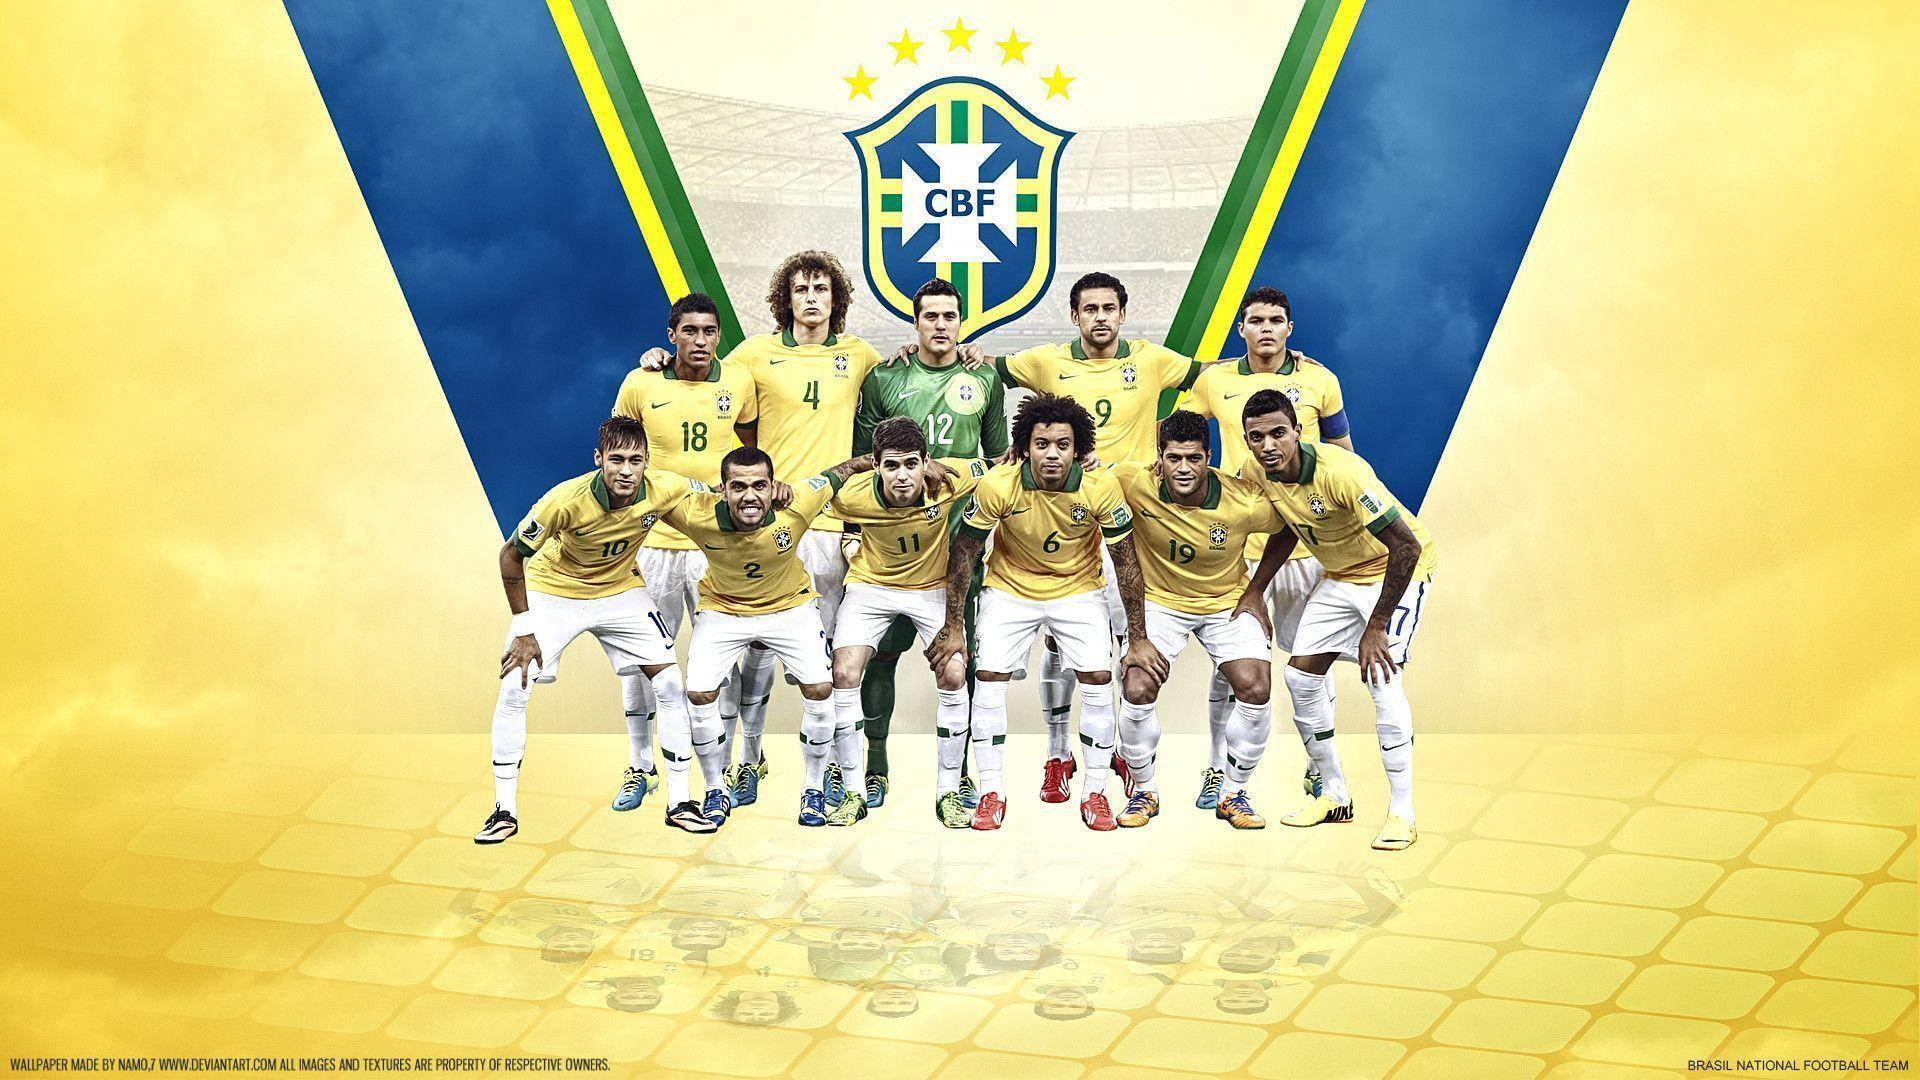 Cool Brazil national team 2014 images for wallpaper in HD ...